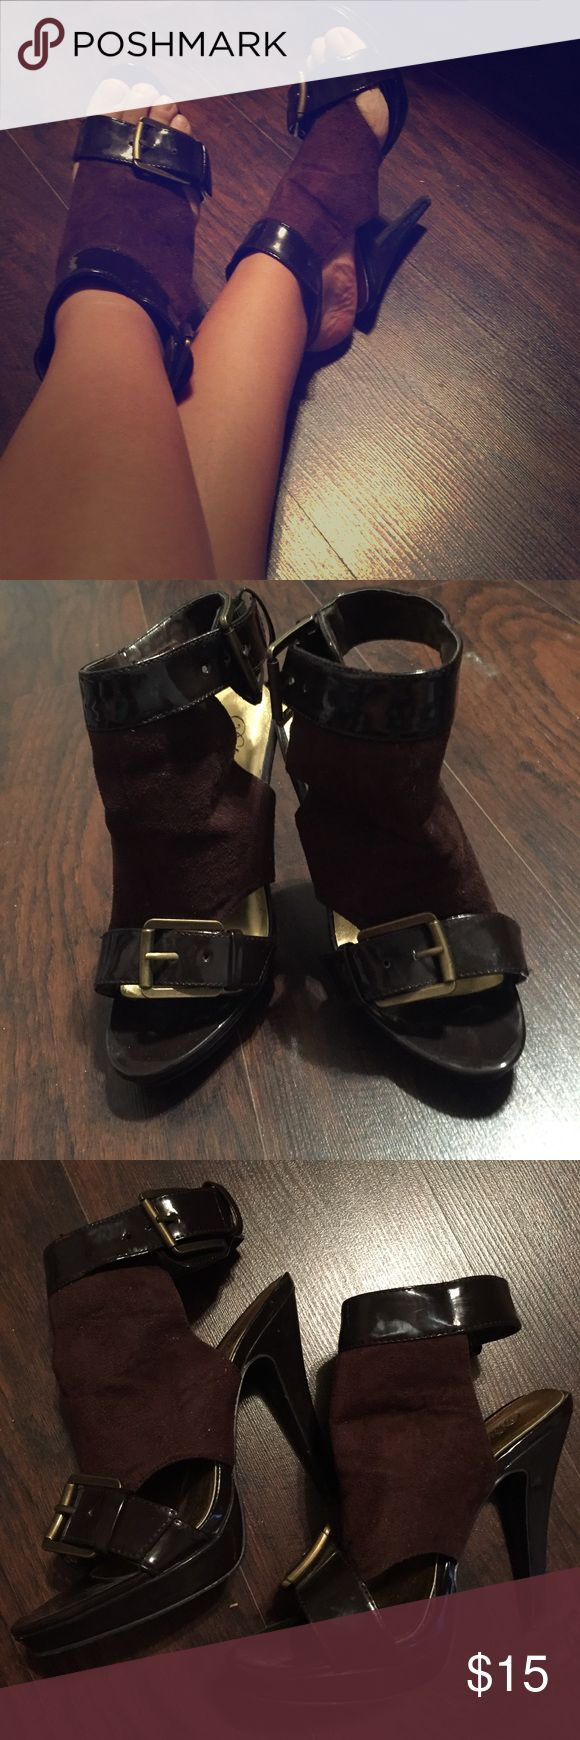 🍁Delicious chocolate brown strappy heels! NWOT Delicious brown strappy heel with bronze buckles. NWOT size 8 Delicious Shoes Heels